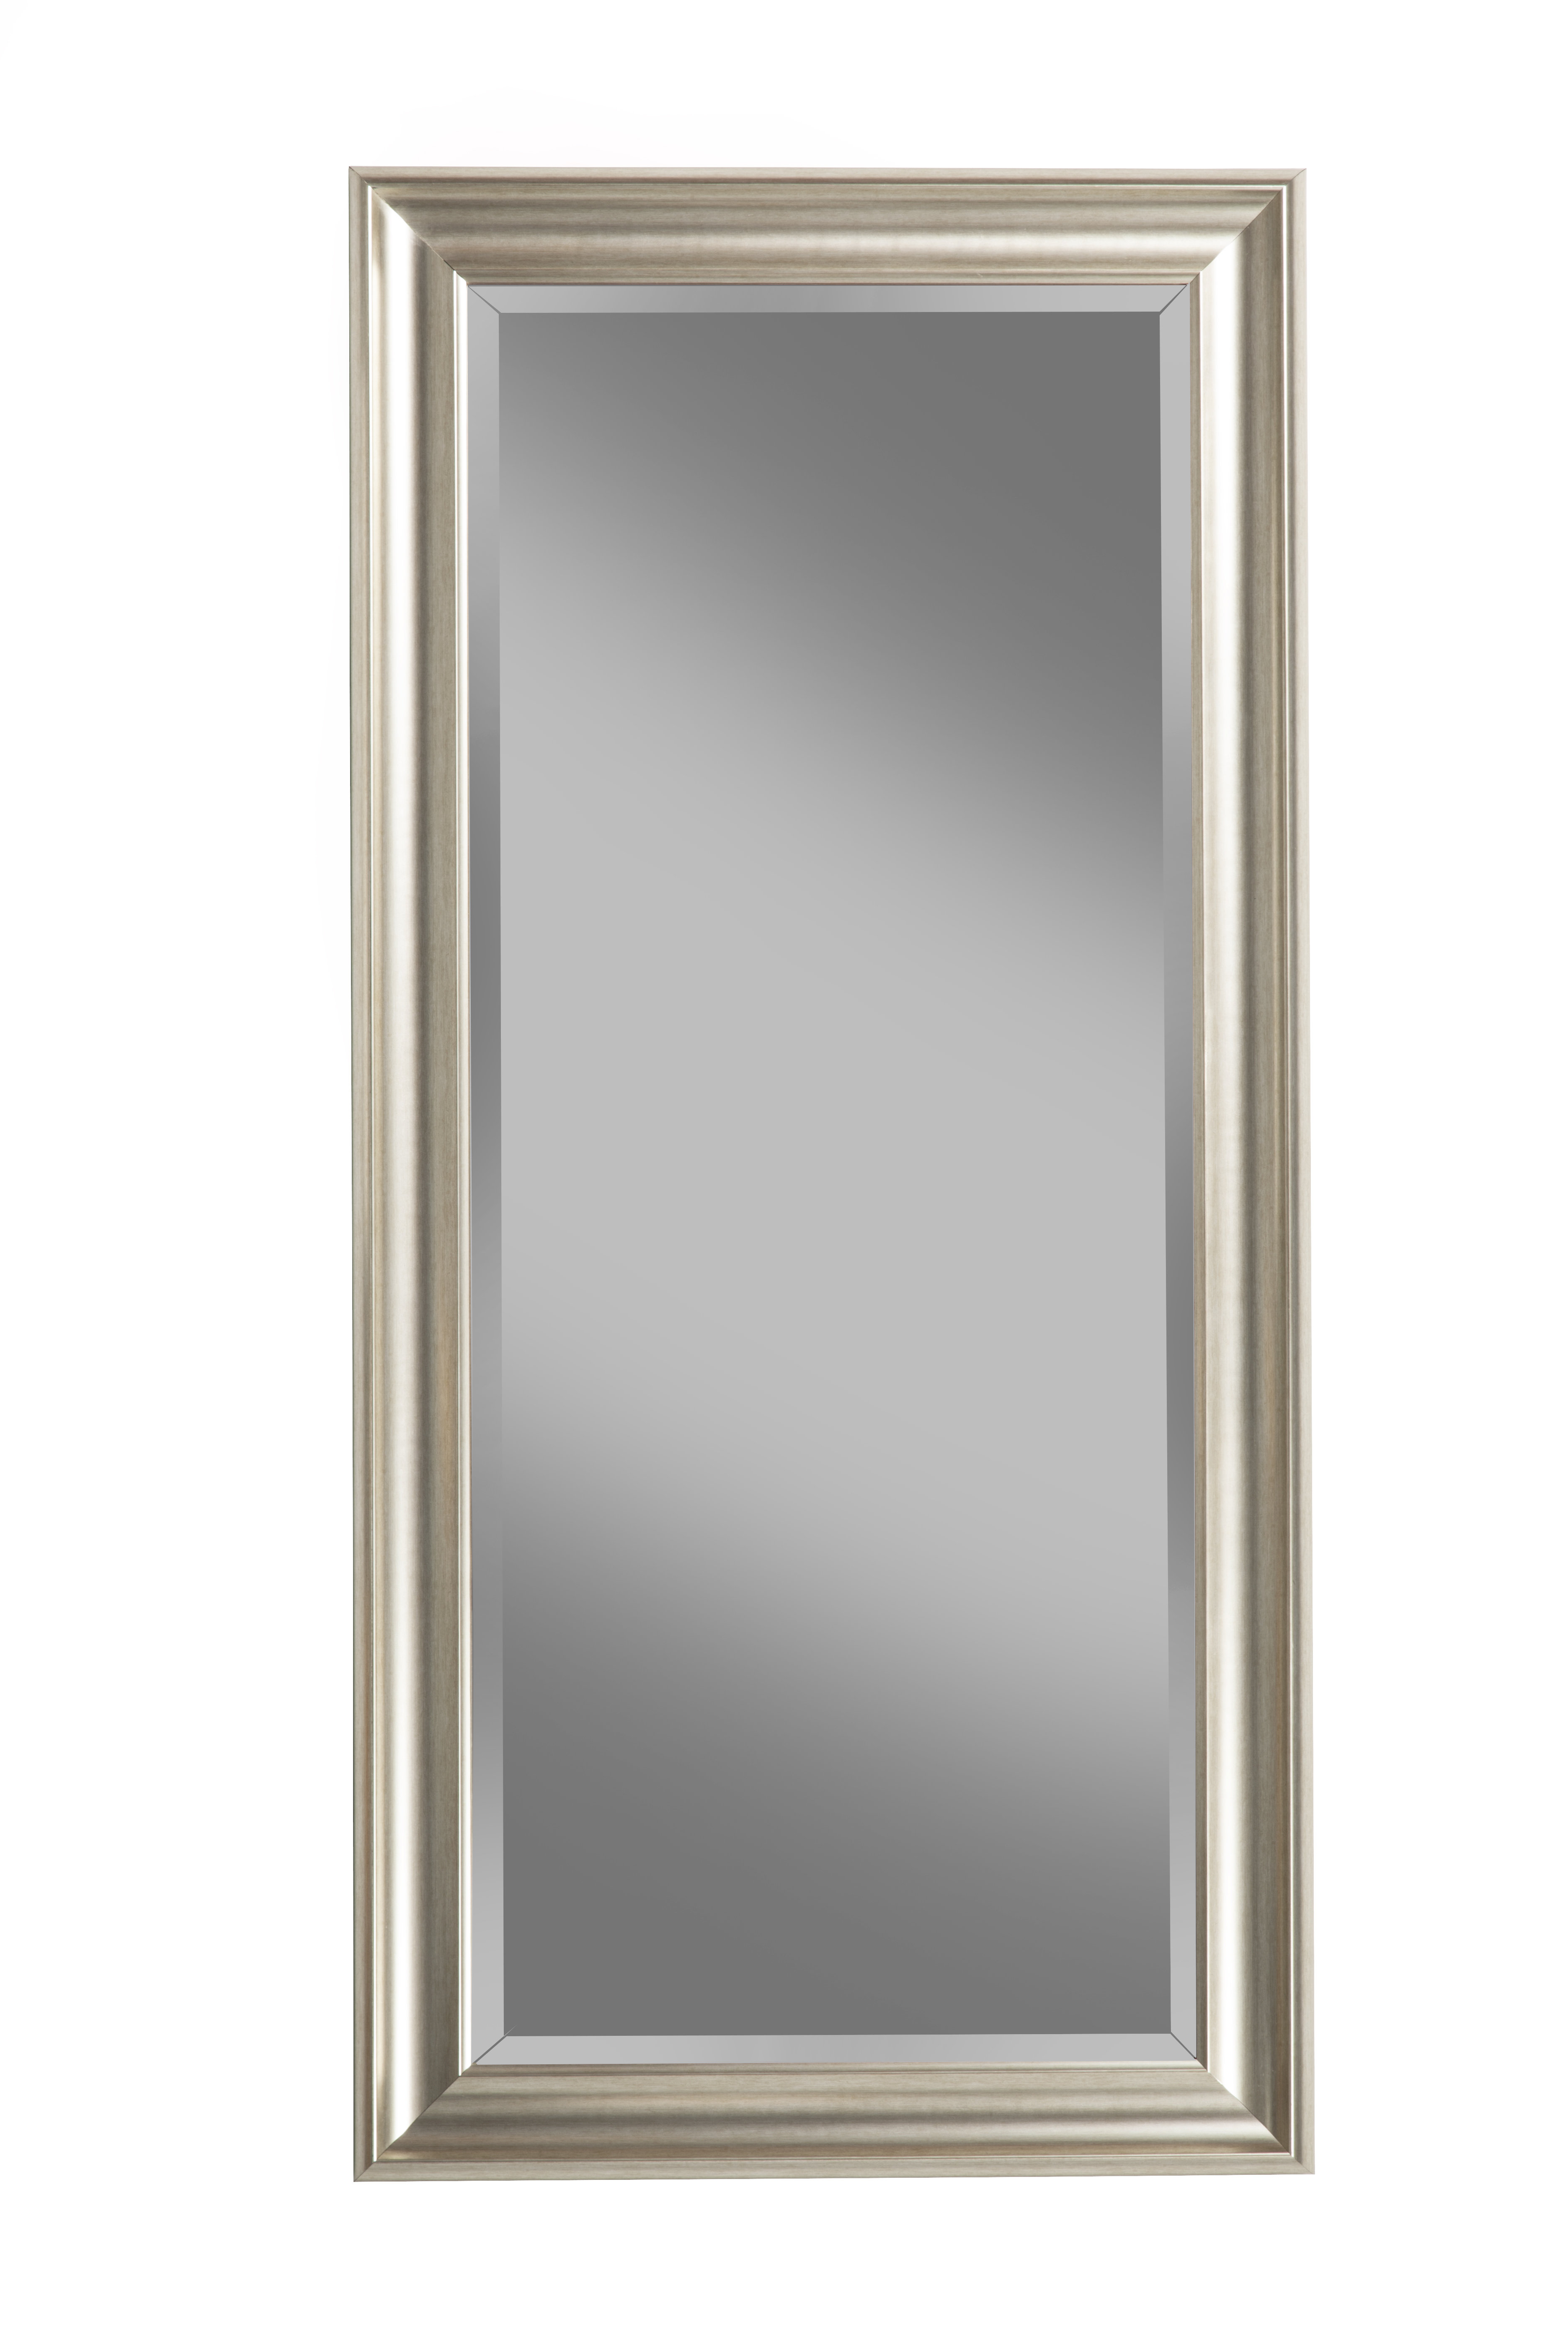 Willa Arlo Interiors Northcutt Full Length Mirror Within Northcutt Accent Mirrors (Image 19 of 20)